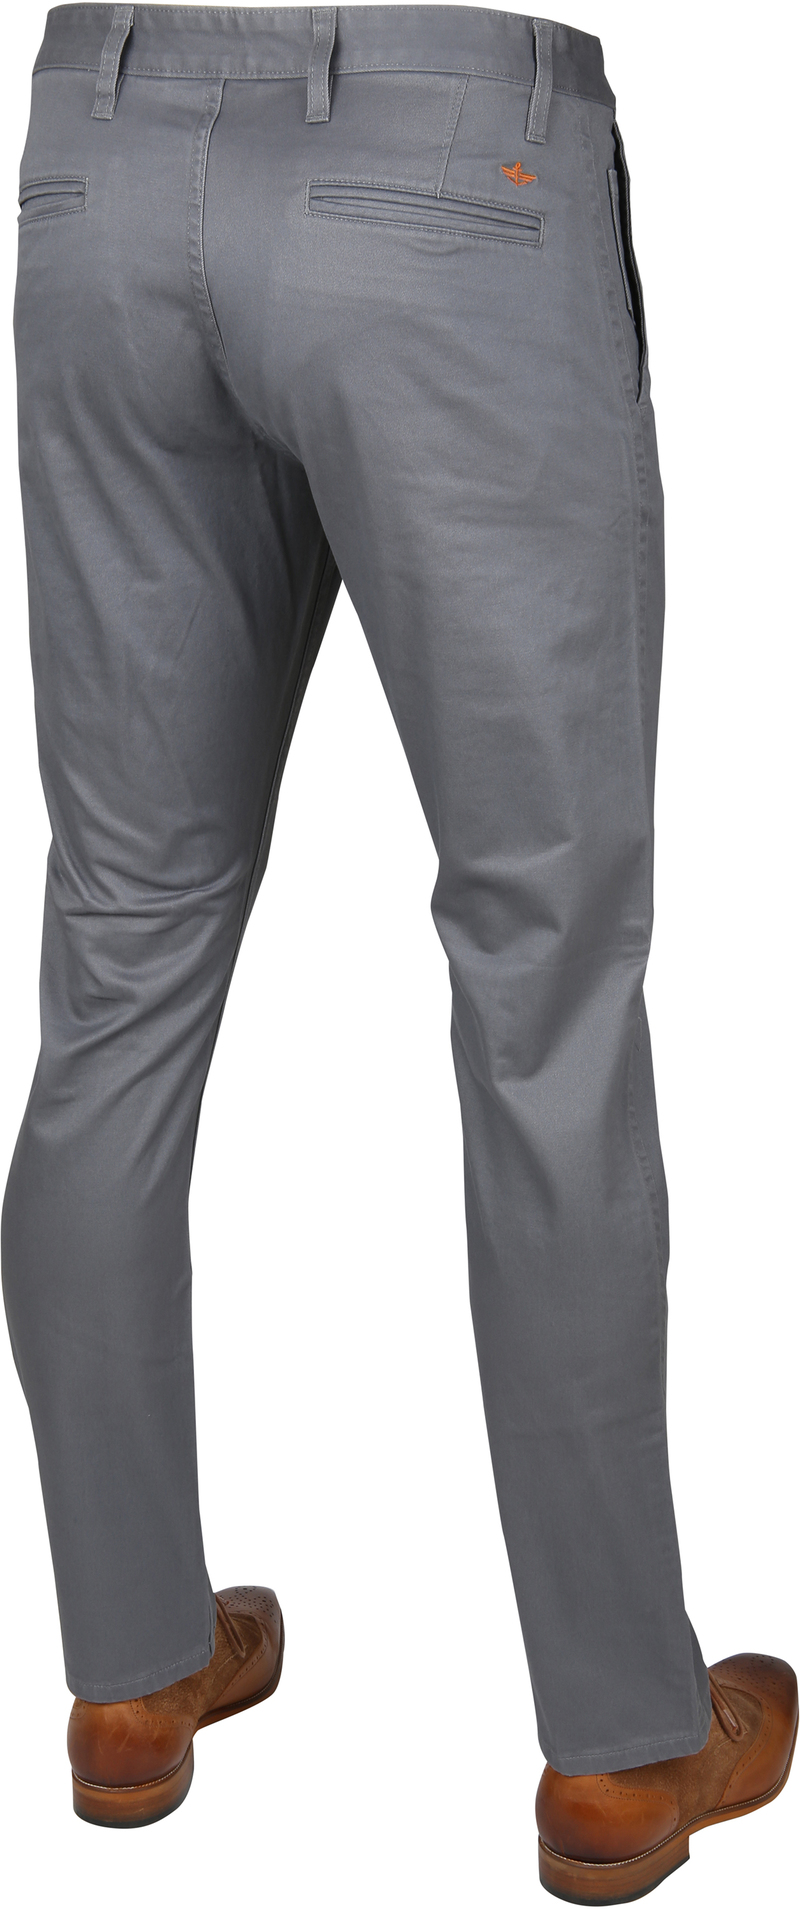 Dockers Alpha Slim Stretch Grijs foto 3